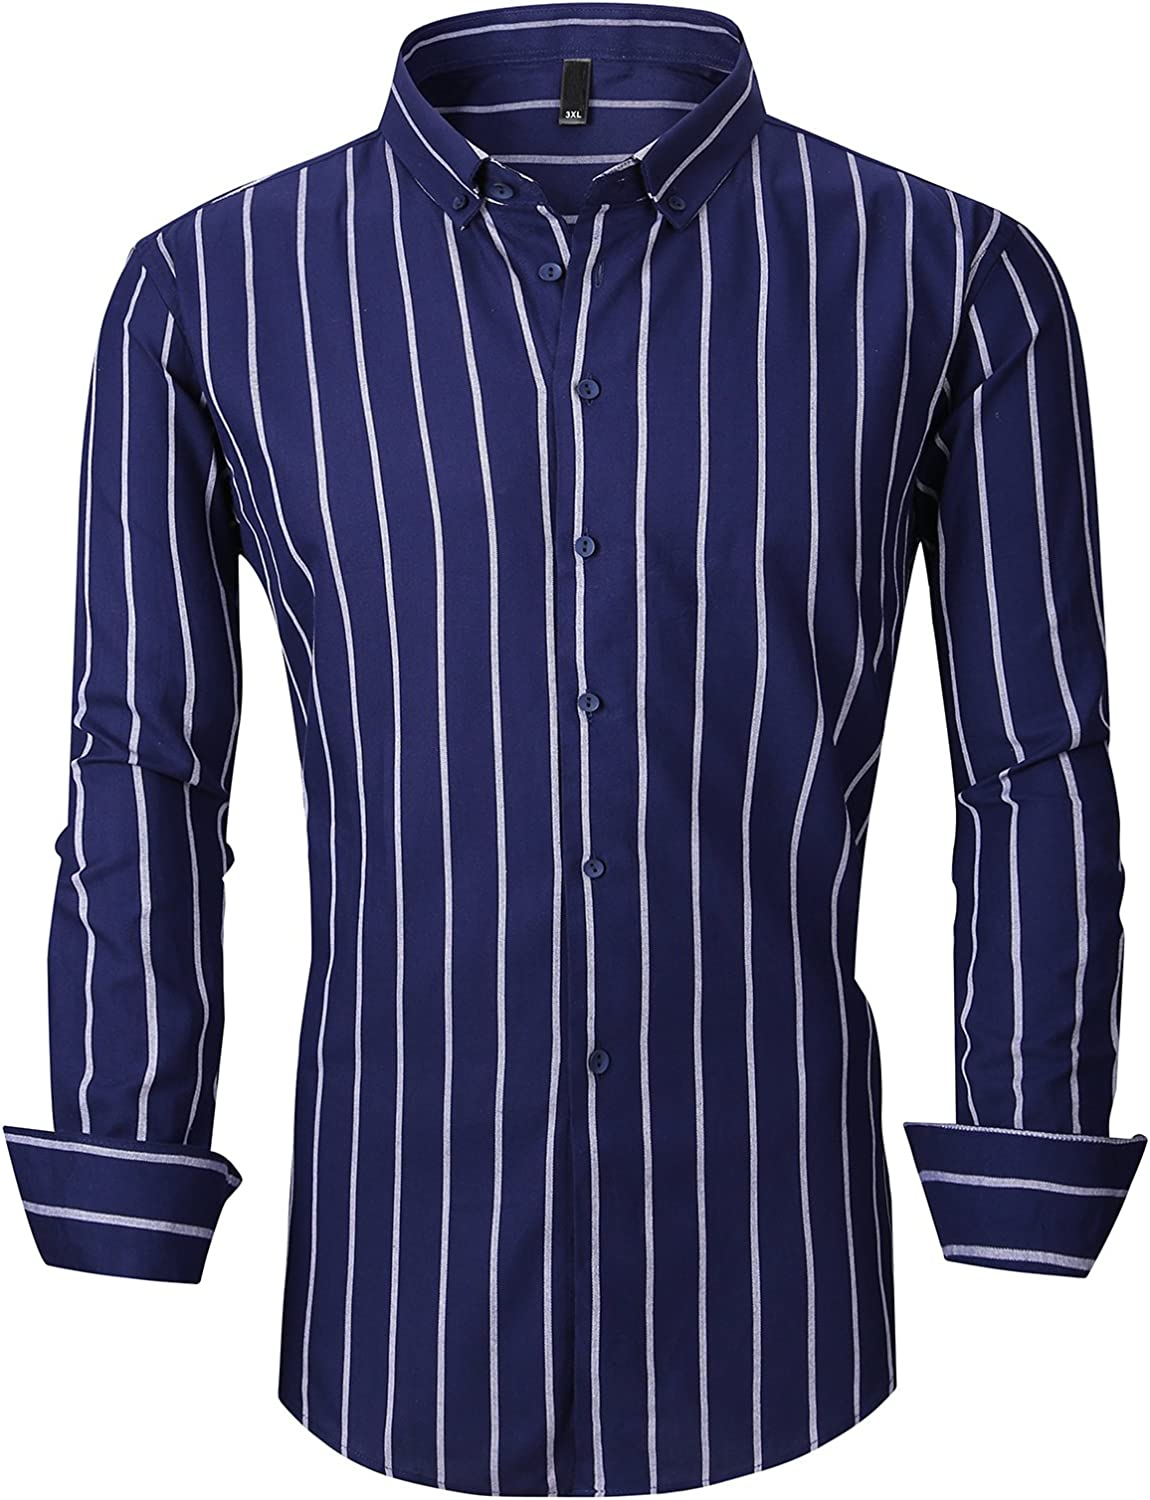 Sweatwater Mens Hipster Button Down Striped Long-Sleeve Slim Fit Shirts